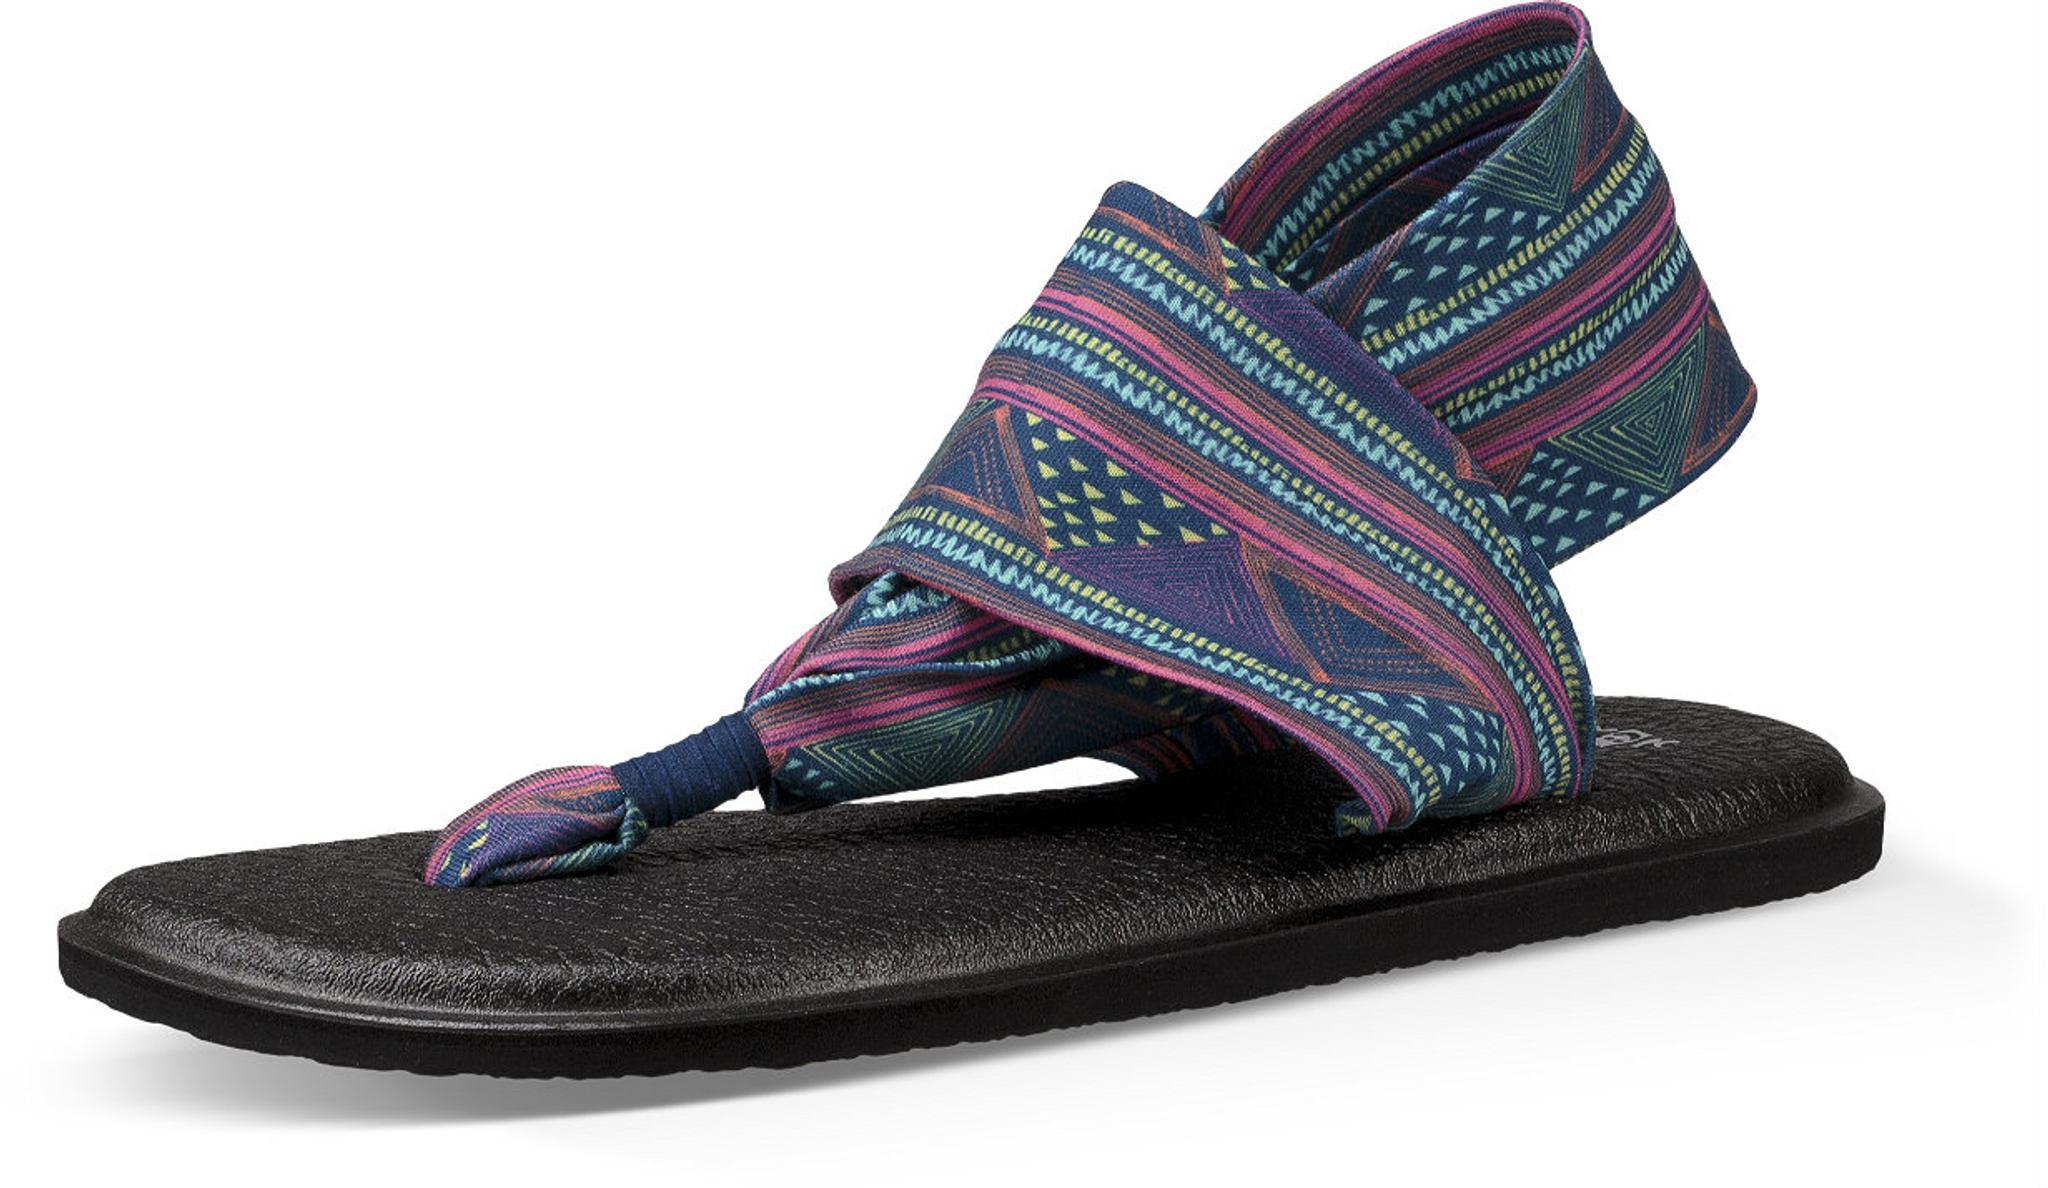 sandals yoga the shop s sanuk mat mats flops women apparel flip